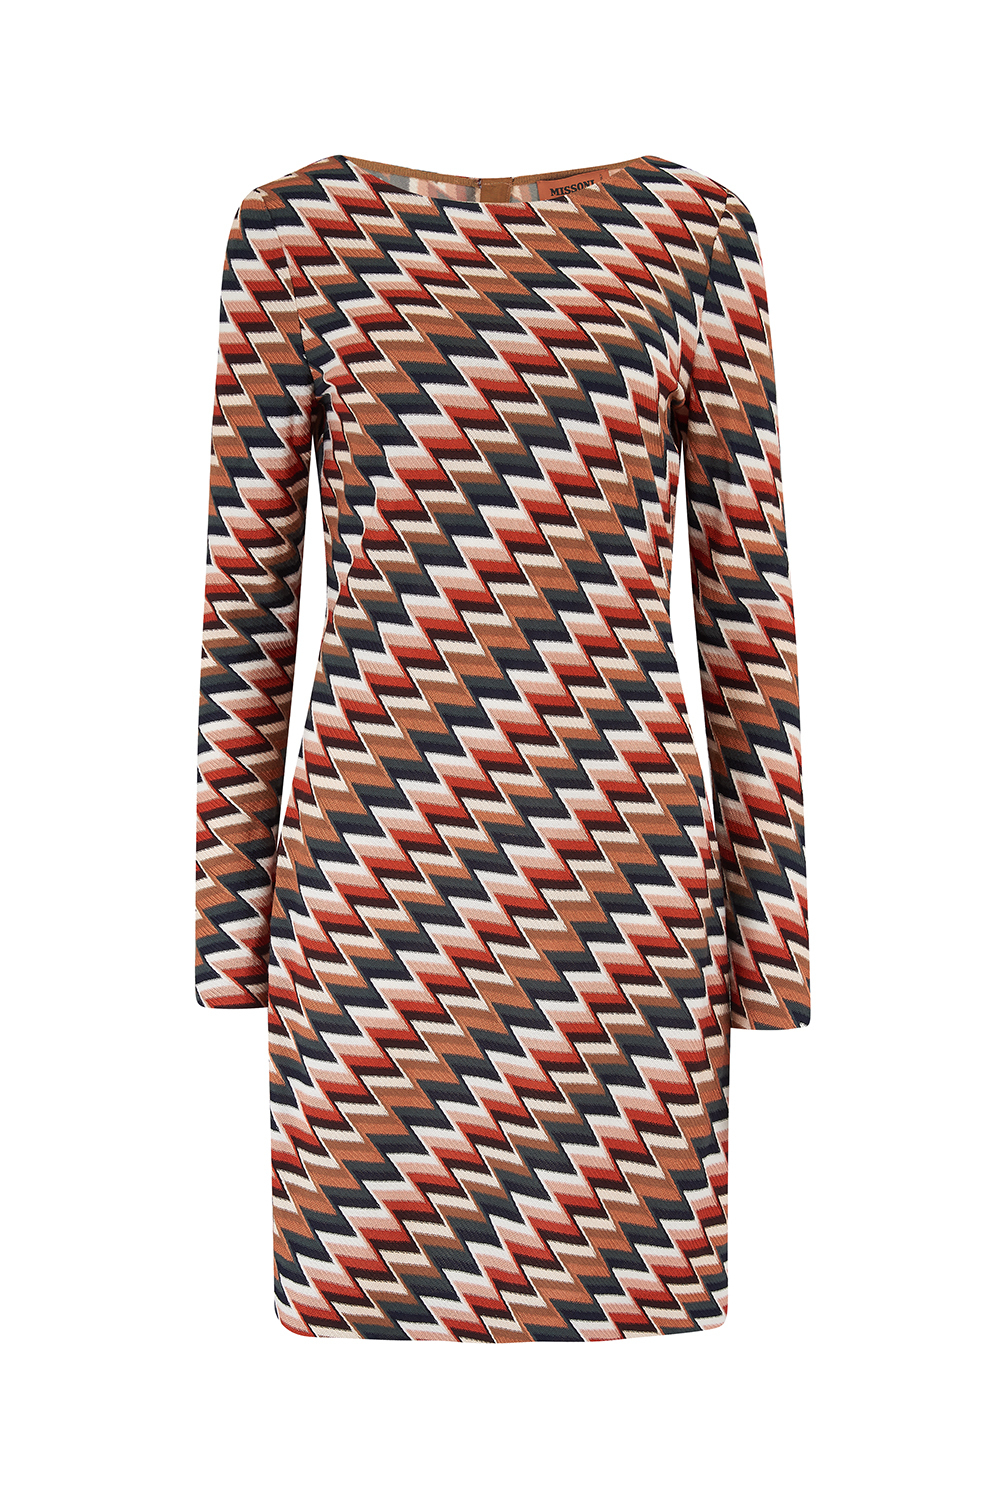 shop missoni clothing